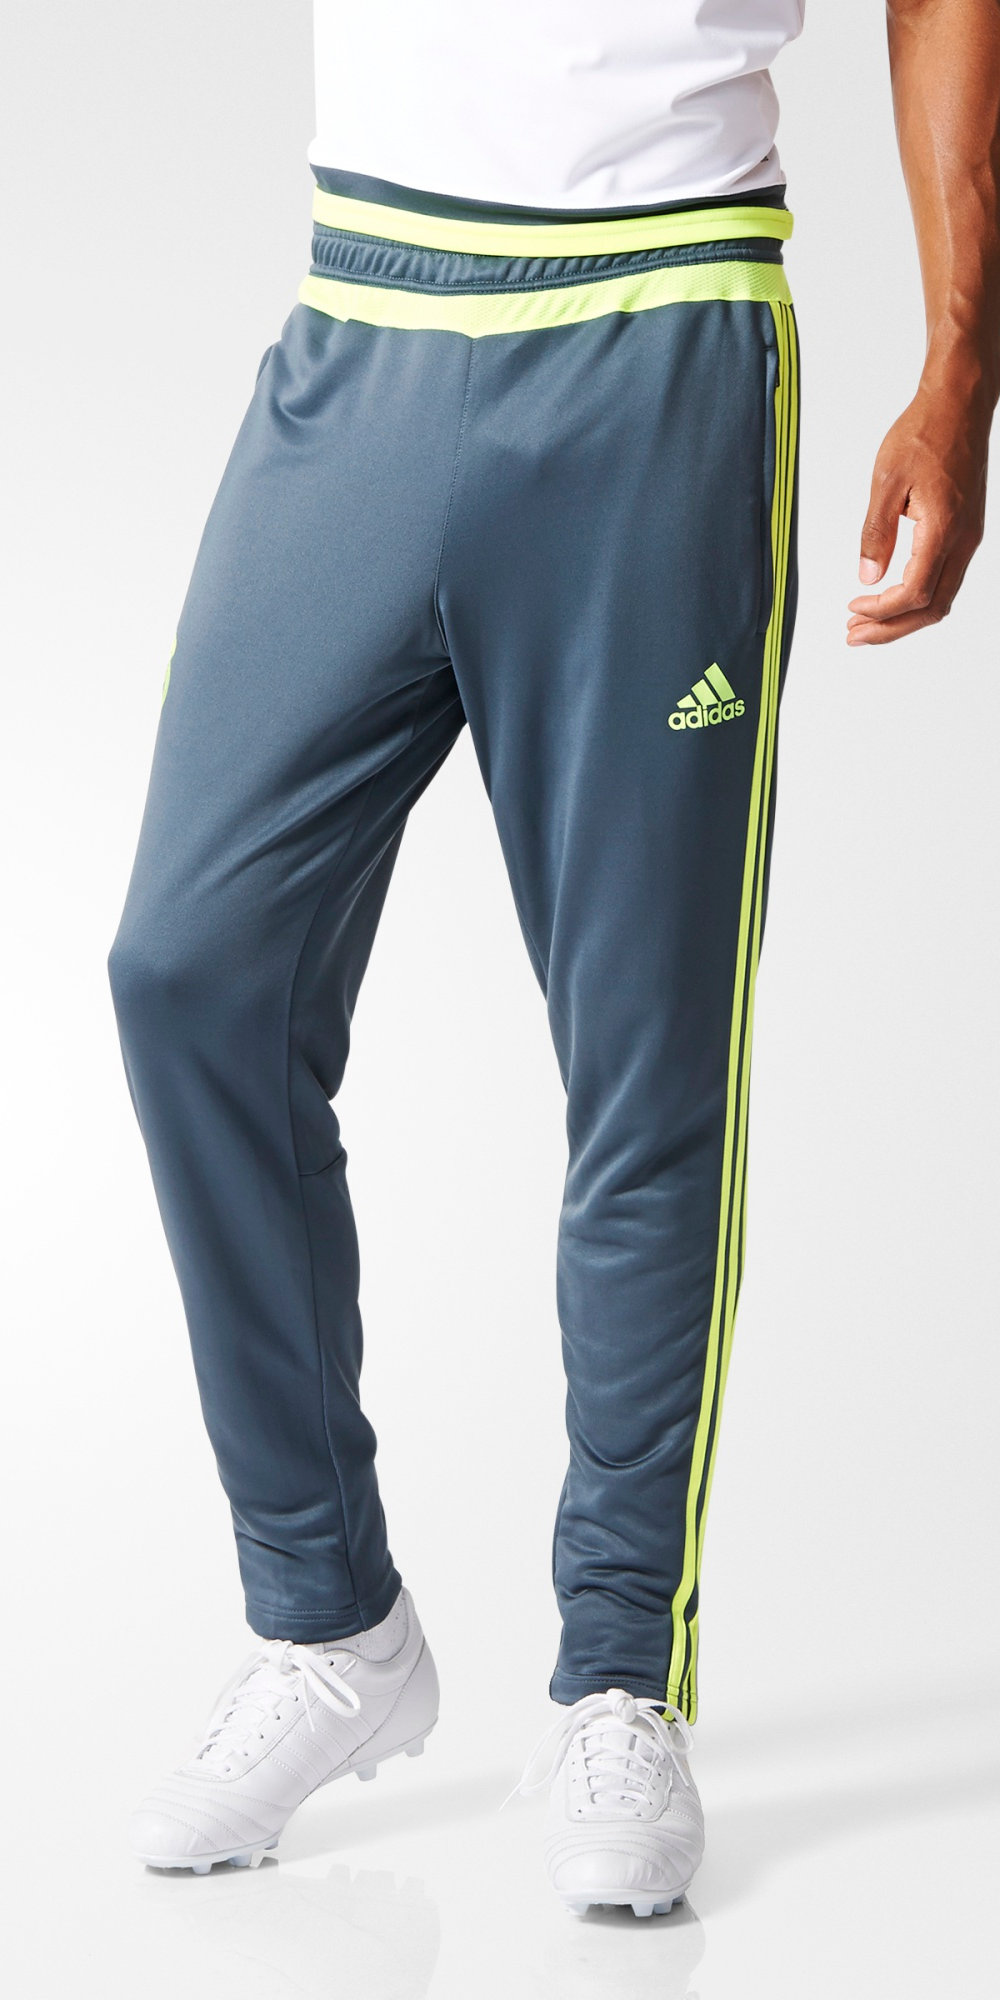 7bd40a48b2 Real Madrid Adidas Track Pantalon Pants Hose Training Gris 2015 16 ...